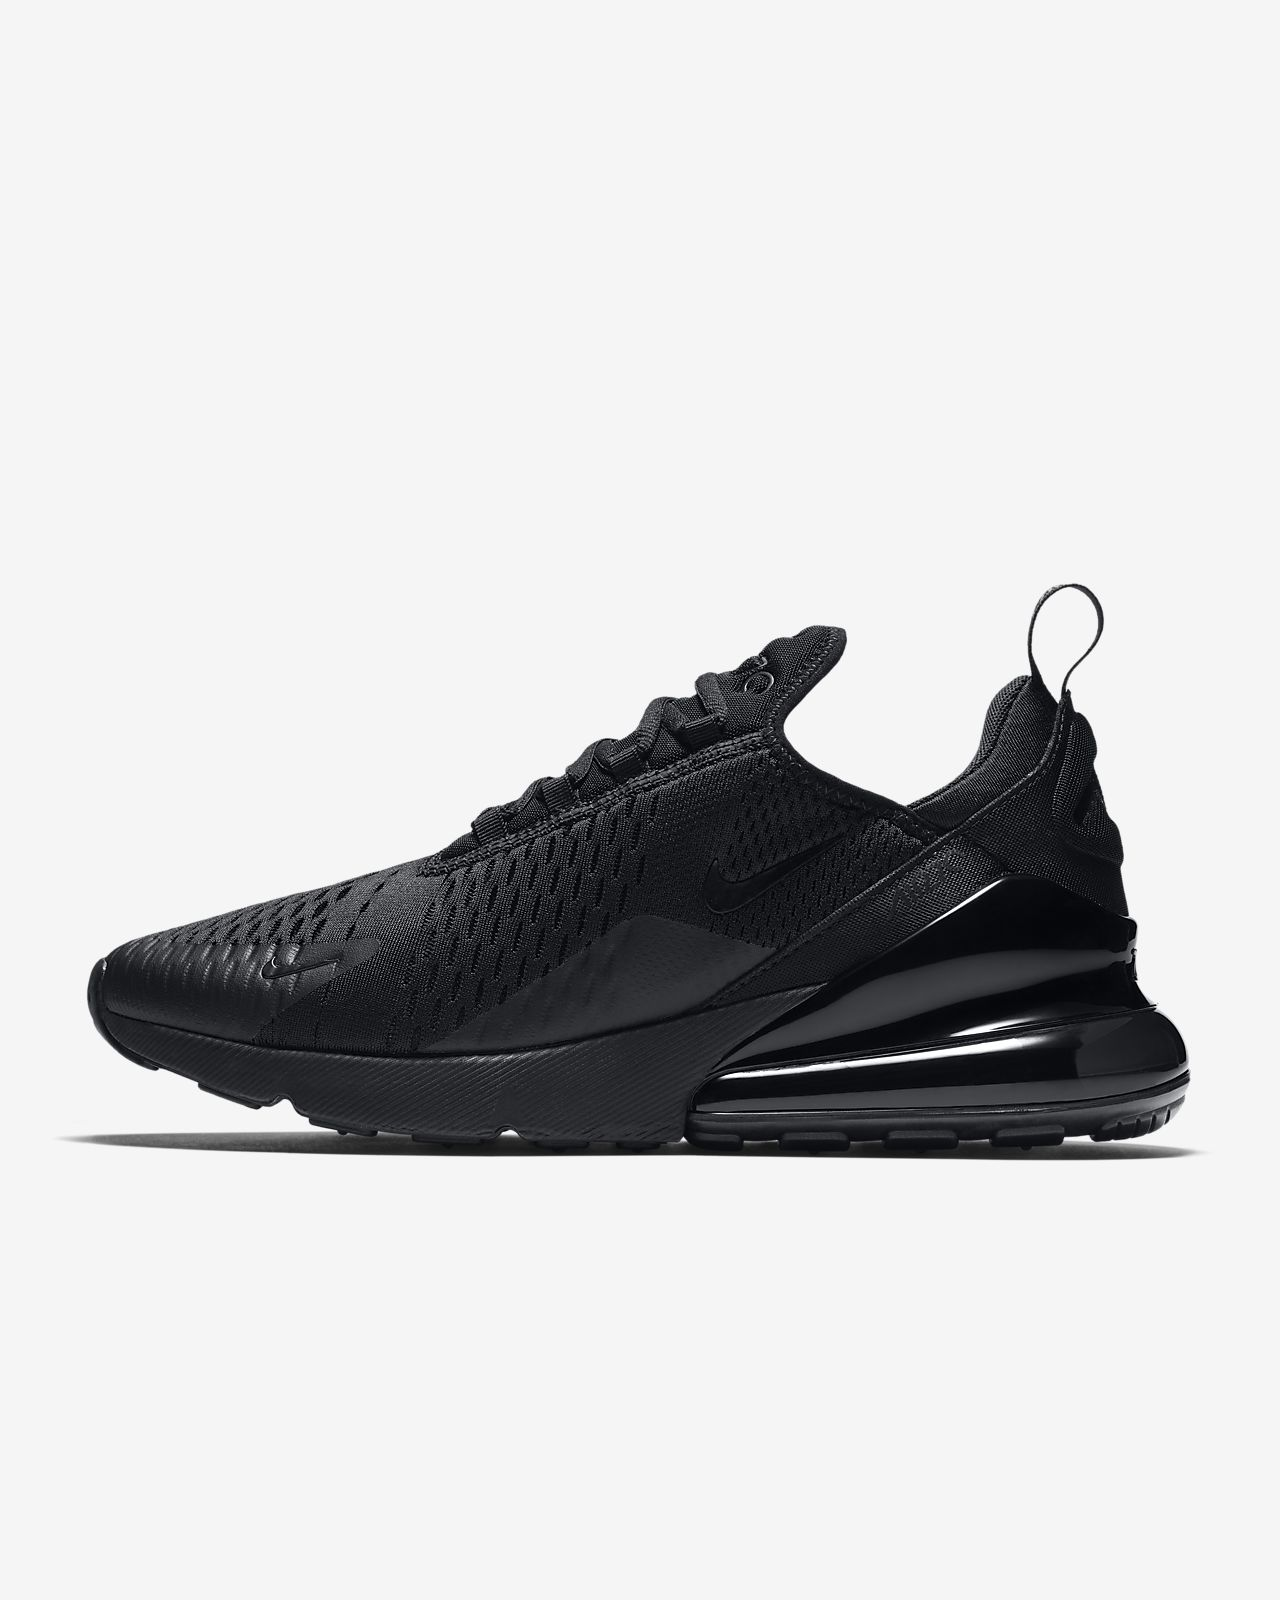 Nike Men's Air Max 270 SE 'Volt Pack' Grey Sneaker